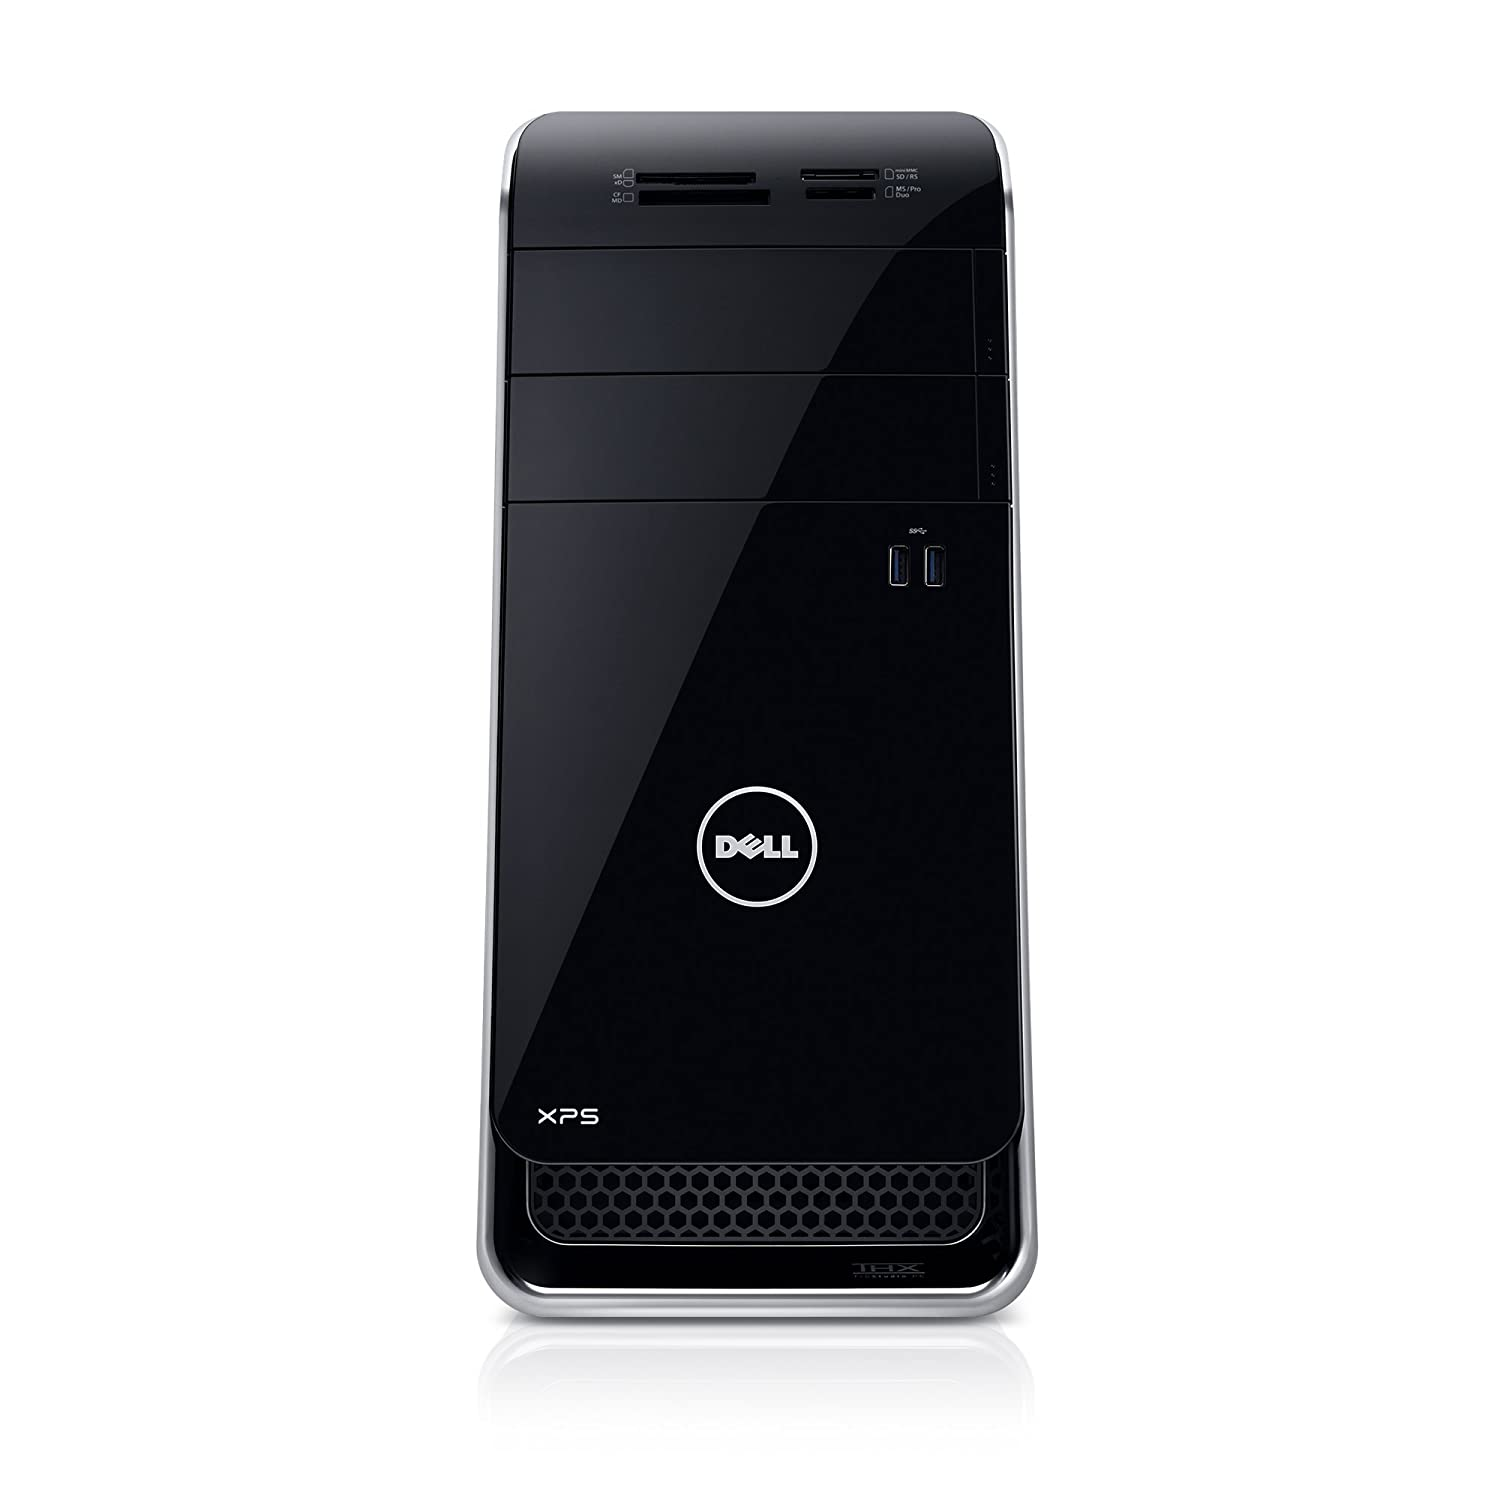 Dell | XPS x8900-631BLK Desktop | 6th Generaton Intel Core i5, 8 GB RAM, 1 TB HDD | NVIDIA GT 730